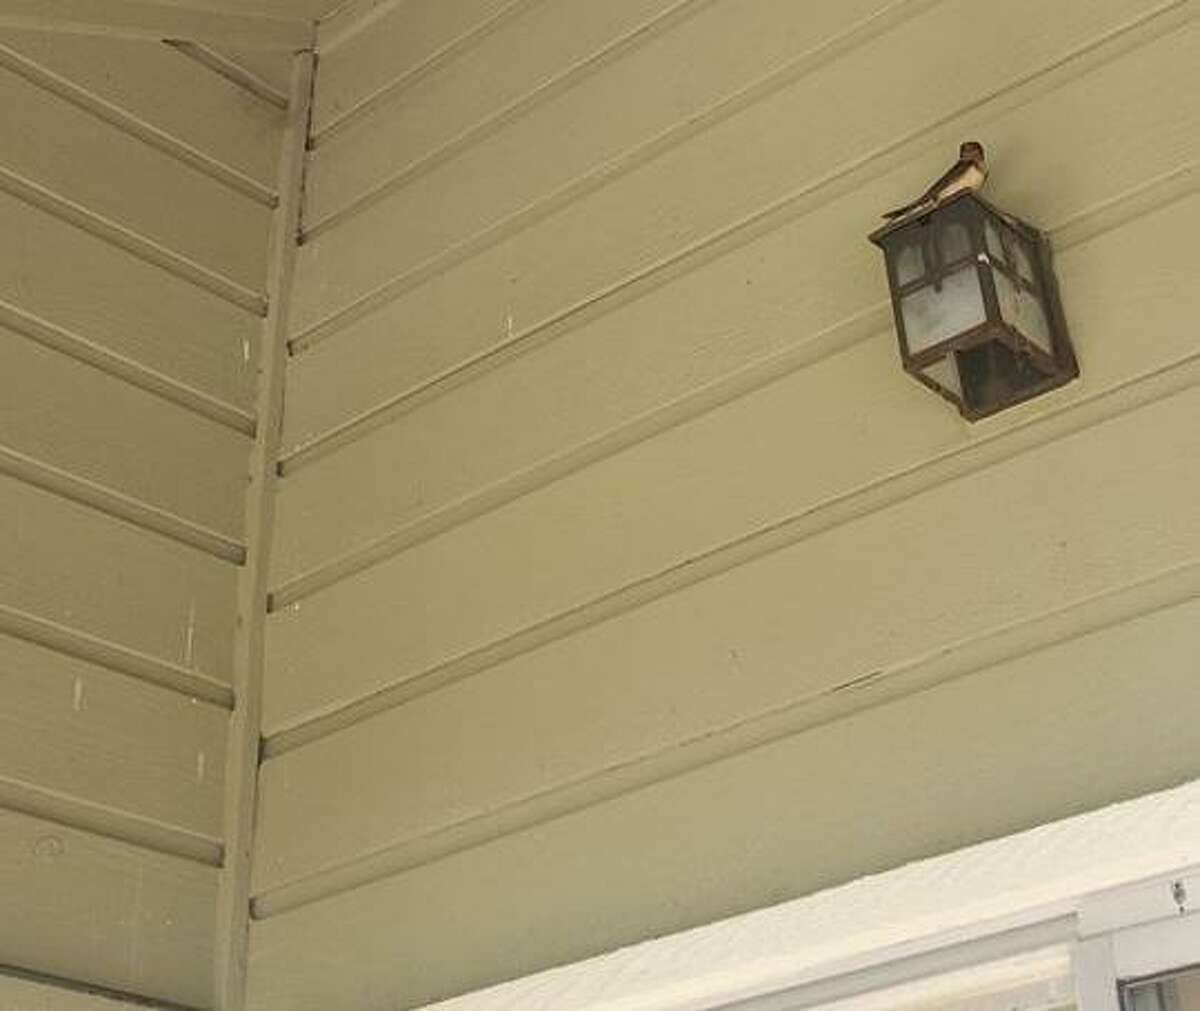 Elise Lauderdale captured photos of barn swallows nesting on her balcony at Honey Hill Apartments in San Antonio in early May. Lauderdale put up signs warning a powerwashing company that destroying the birds' nests is illegal under a 100-year-old wildlife law.